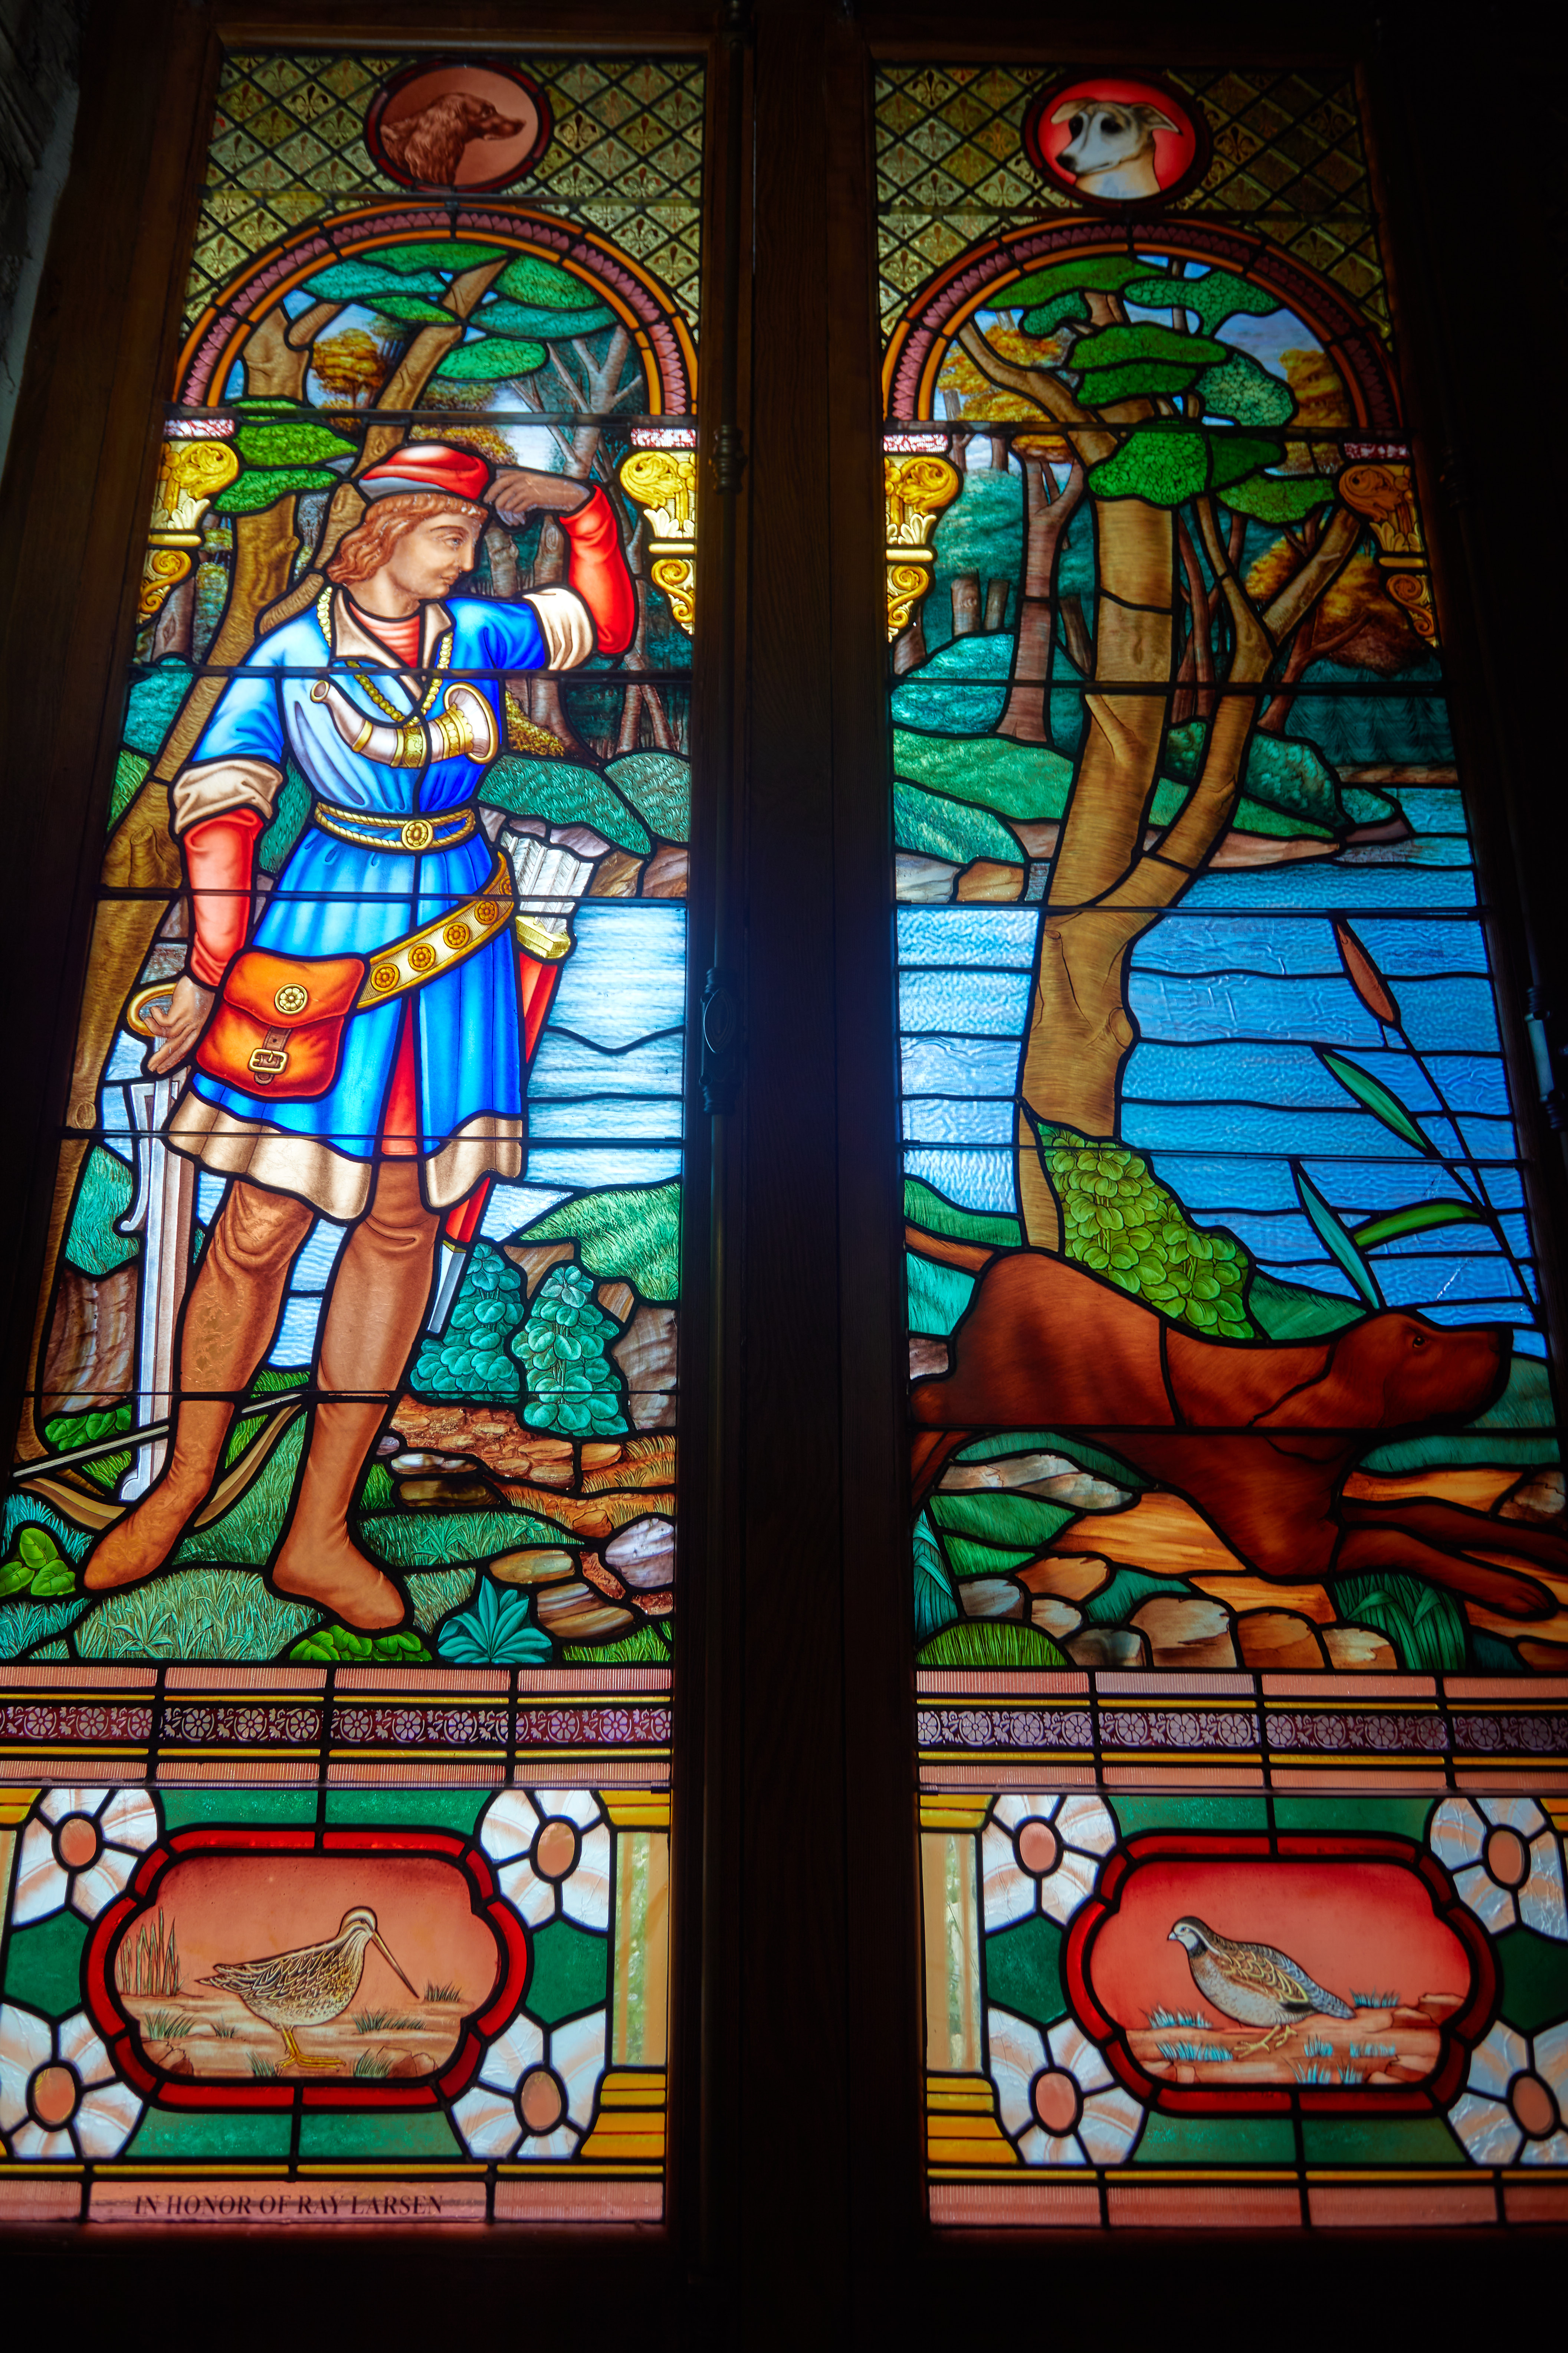 Stained glass window of St. Hubert with a dog.